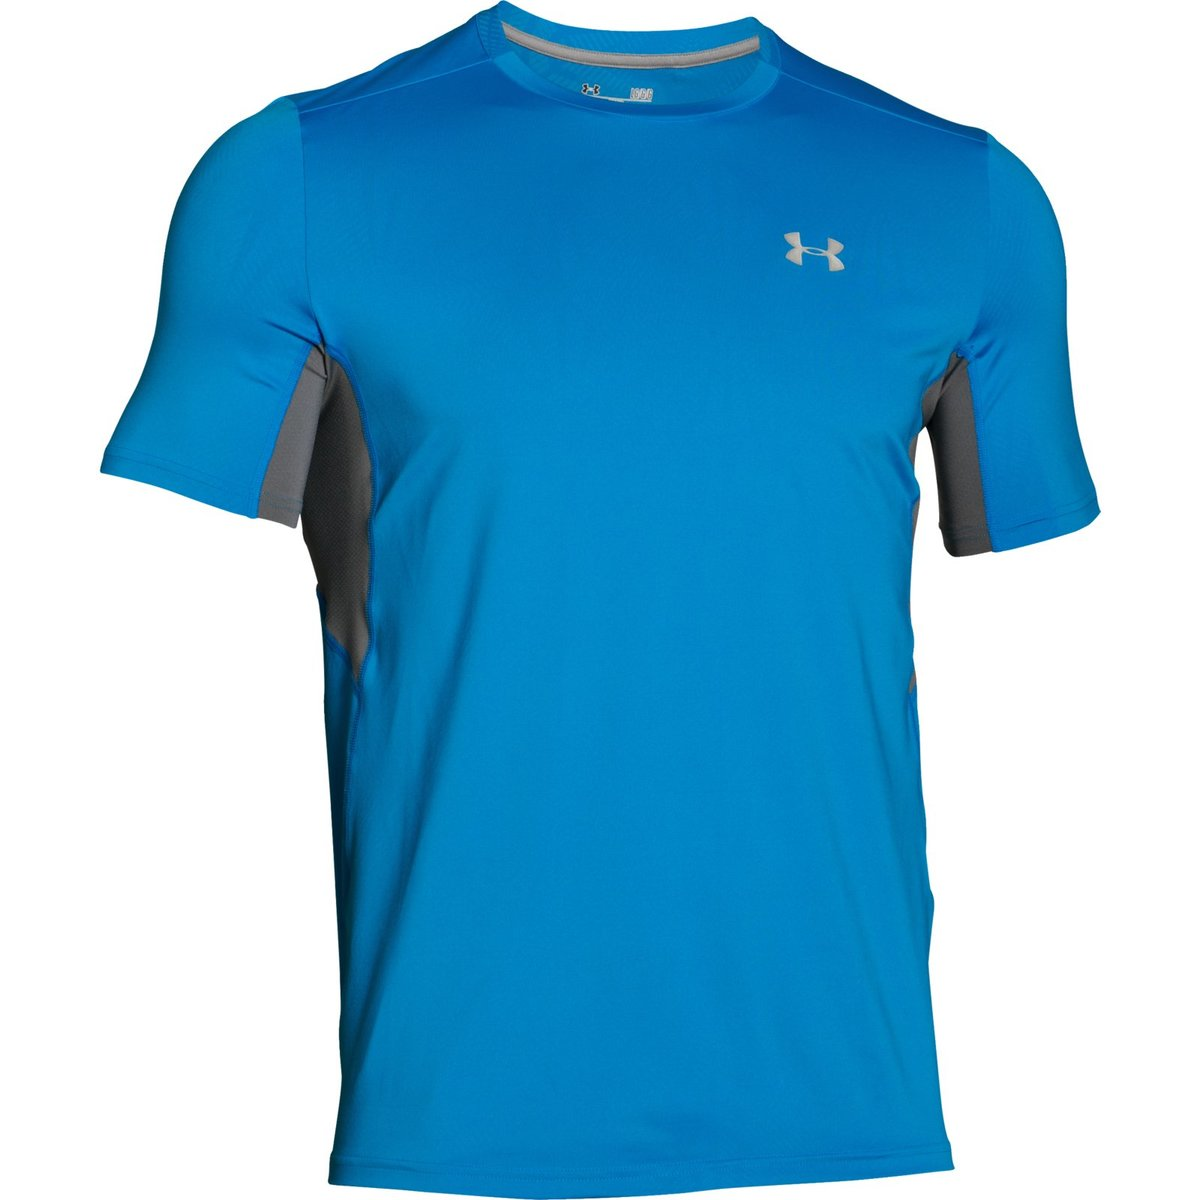 CoolSwitch Run Under Armour Pantaloncini Uomo